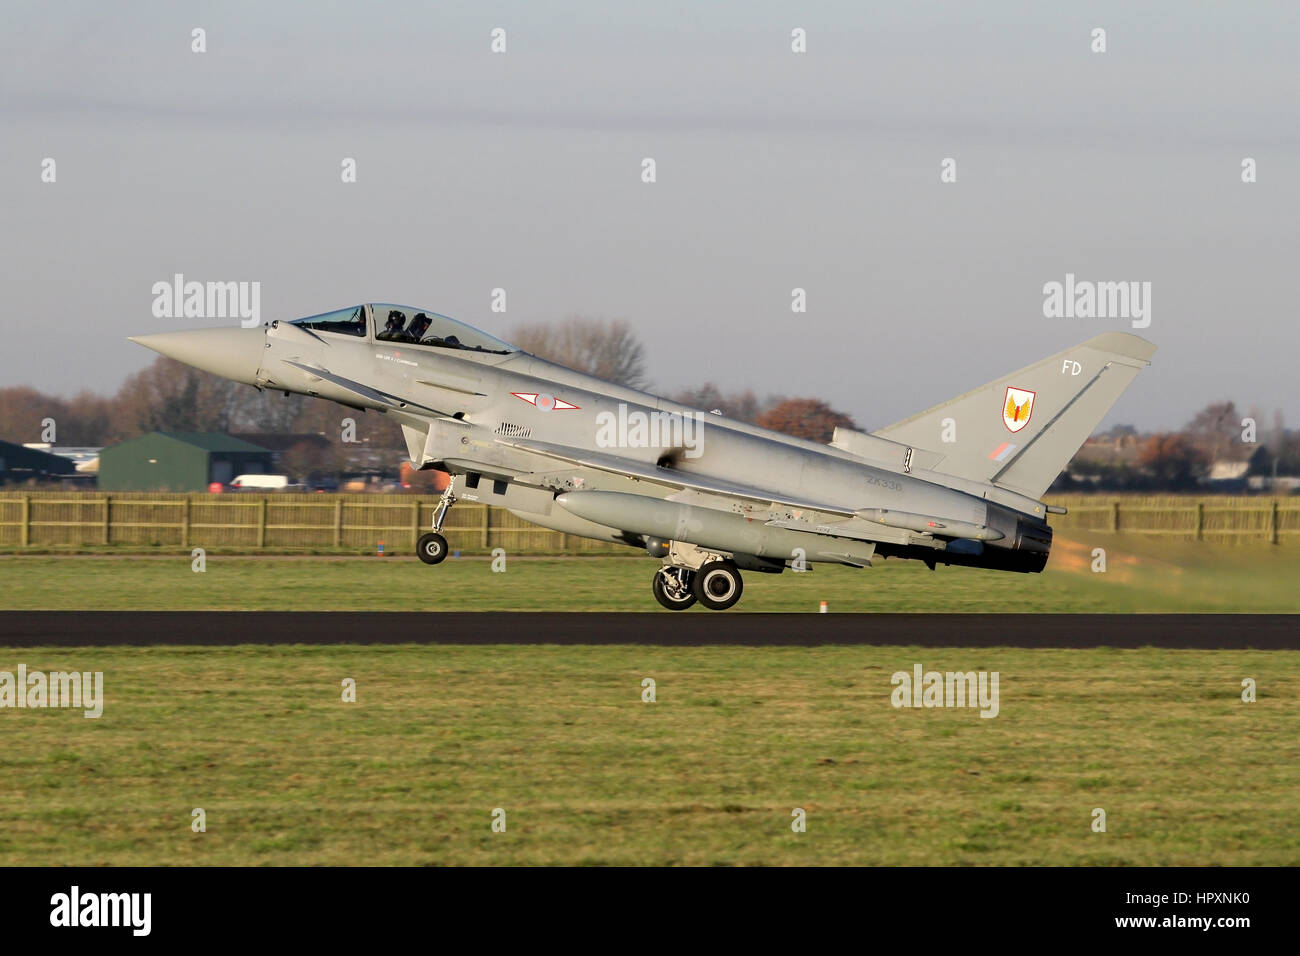 A rare use of reheat/afterburner from a RAF Typhoon as it rotates of the runway at RAF Coningsby in the low light. - Stock Image